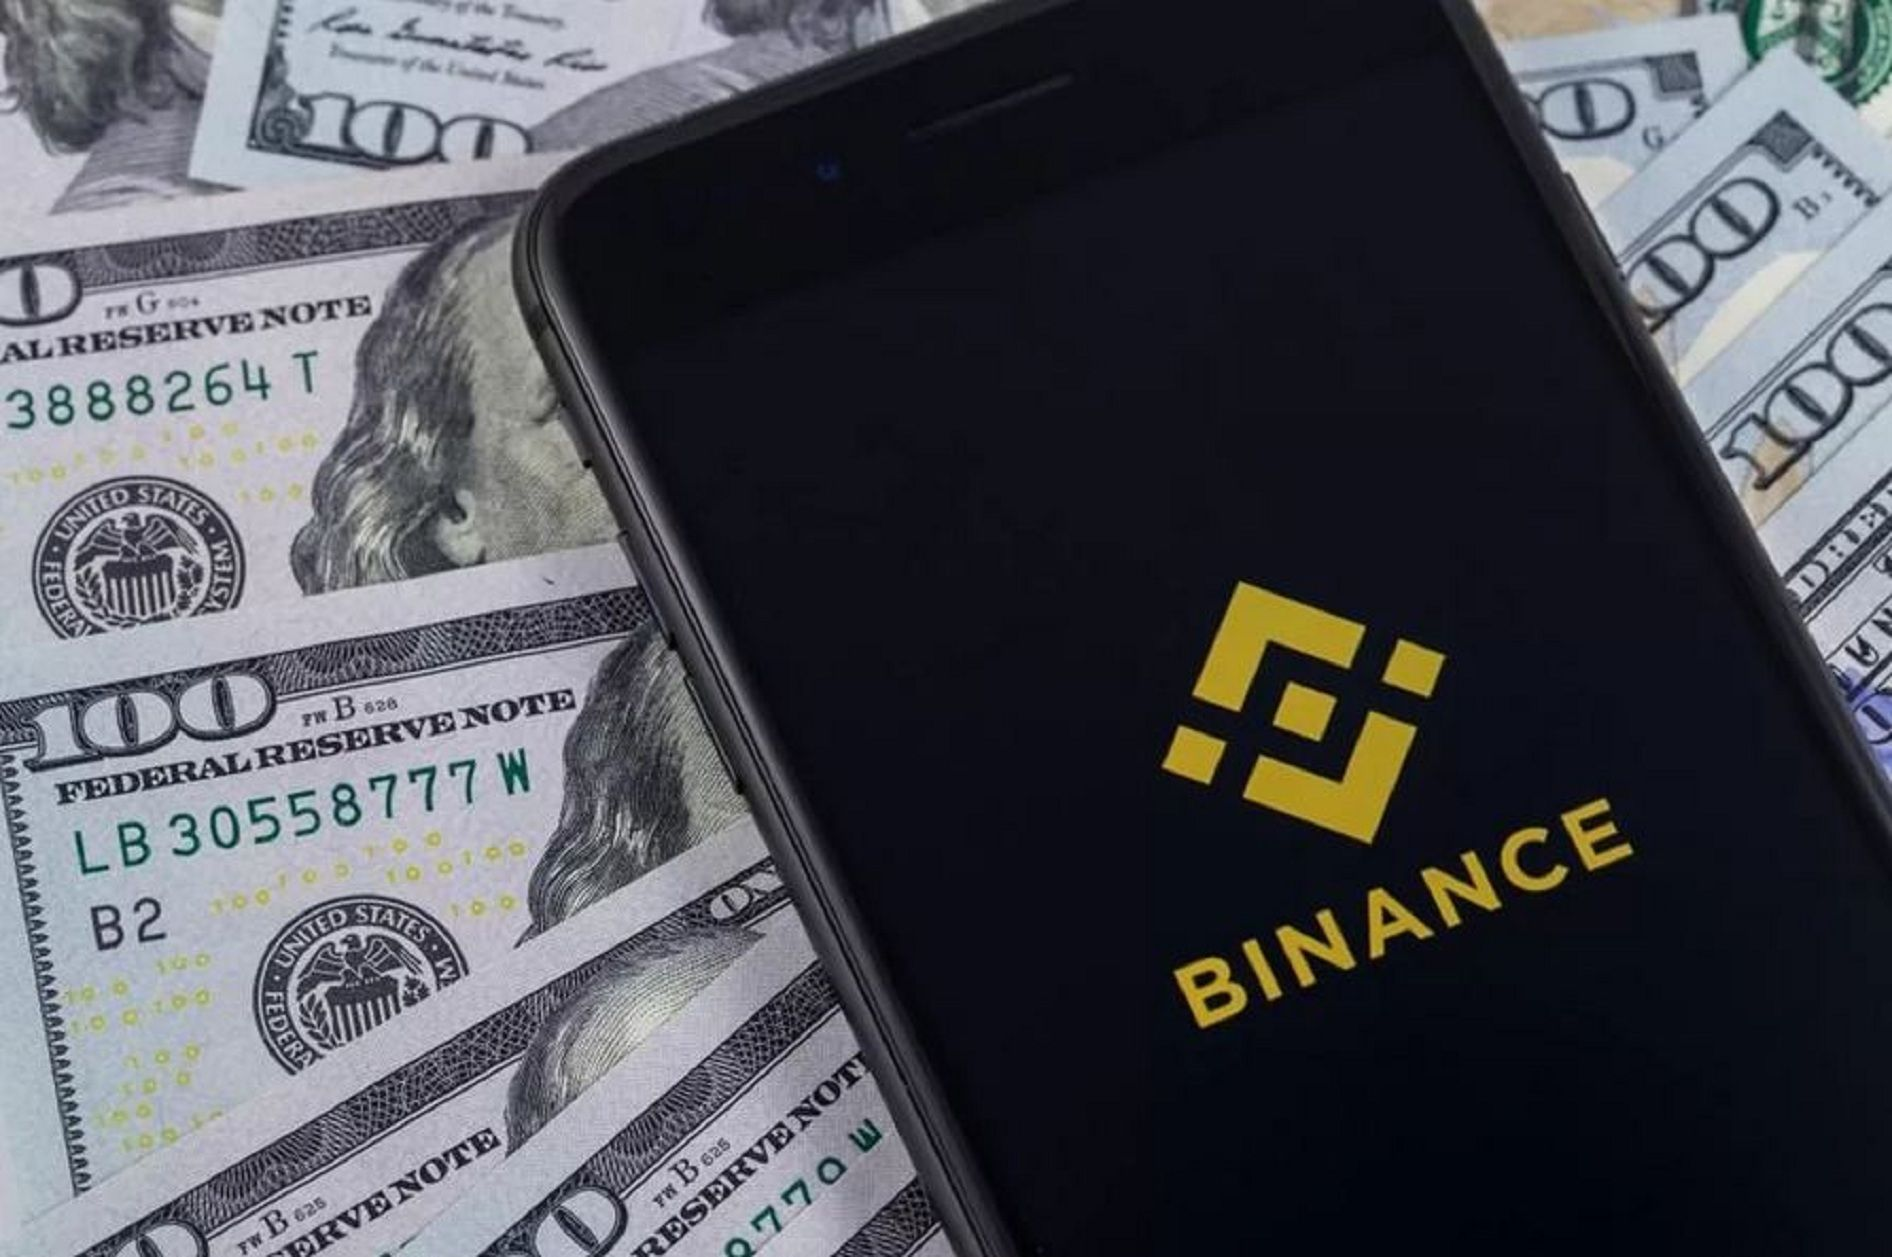 Binance will 'do what they can' to help recover funds stolen in yesterday's $5M Eterbase hack